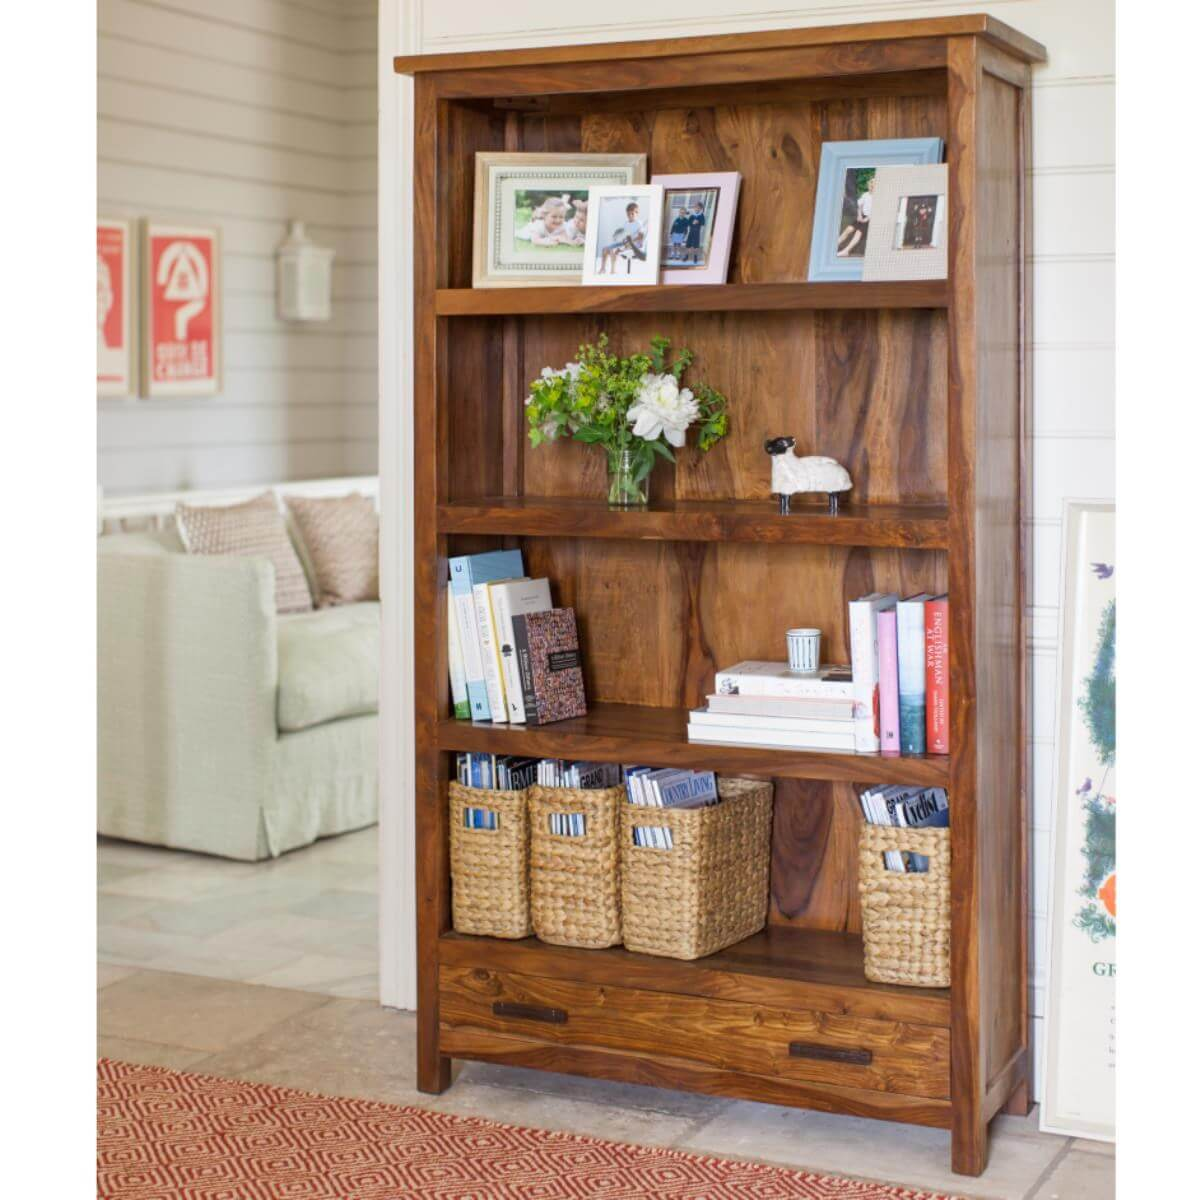 Large free-standing sheesham bookcase with a 3 shelves and a drawer